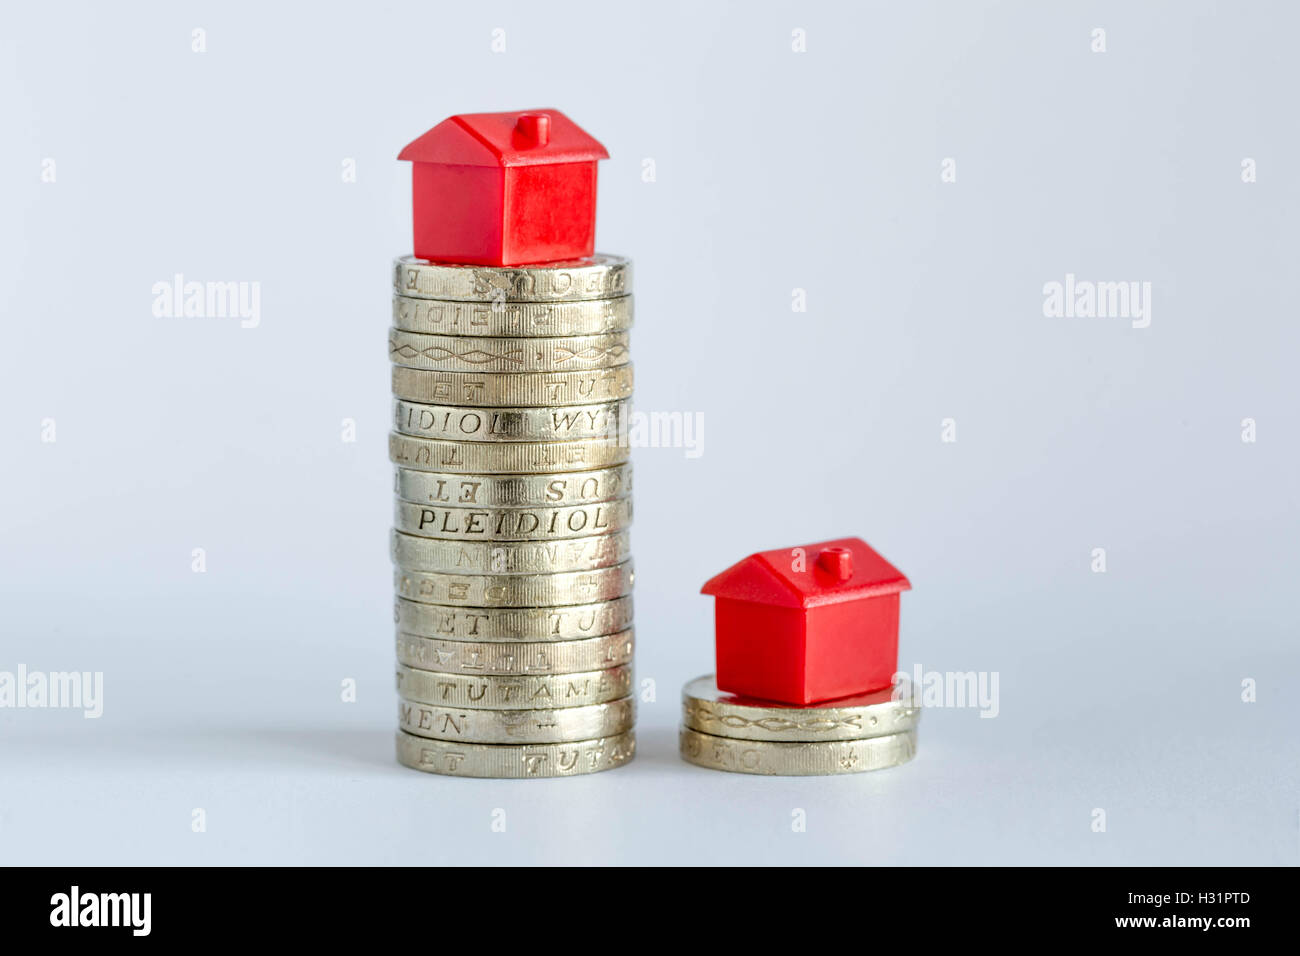 Concept image depicting housing/property markets. - Stock Image